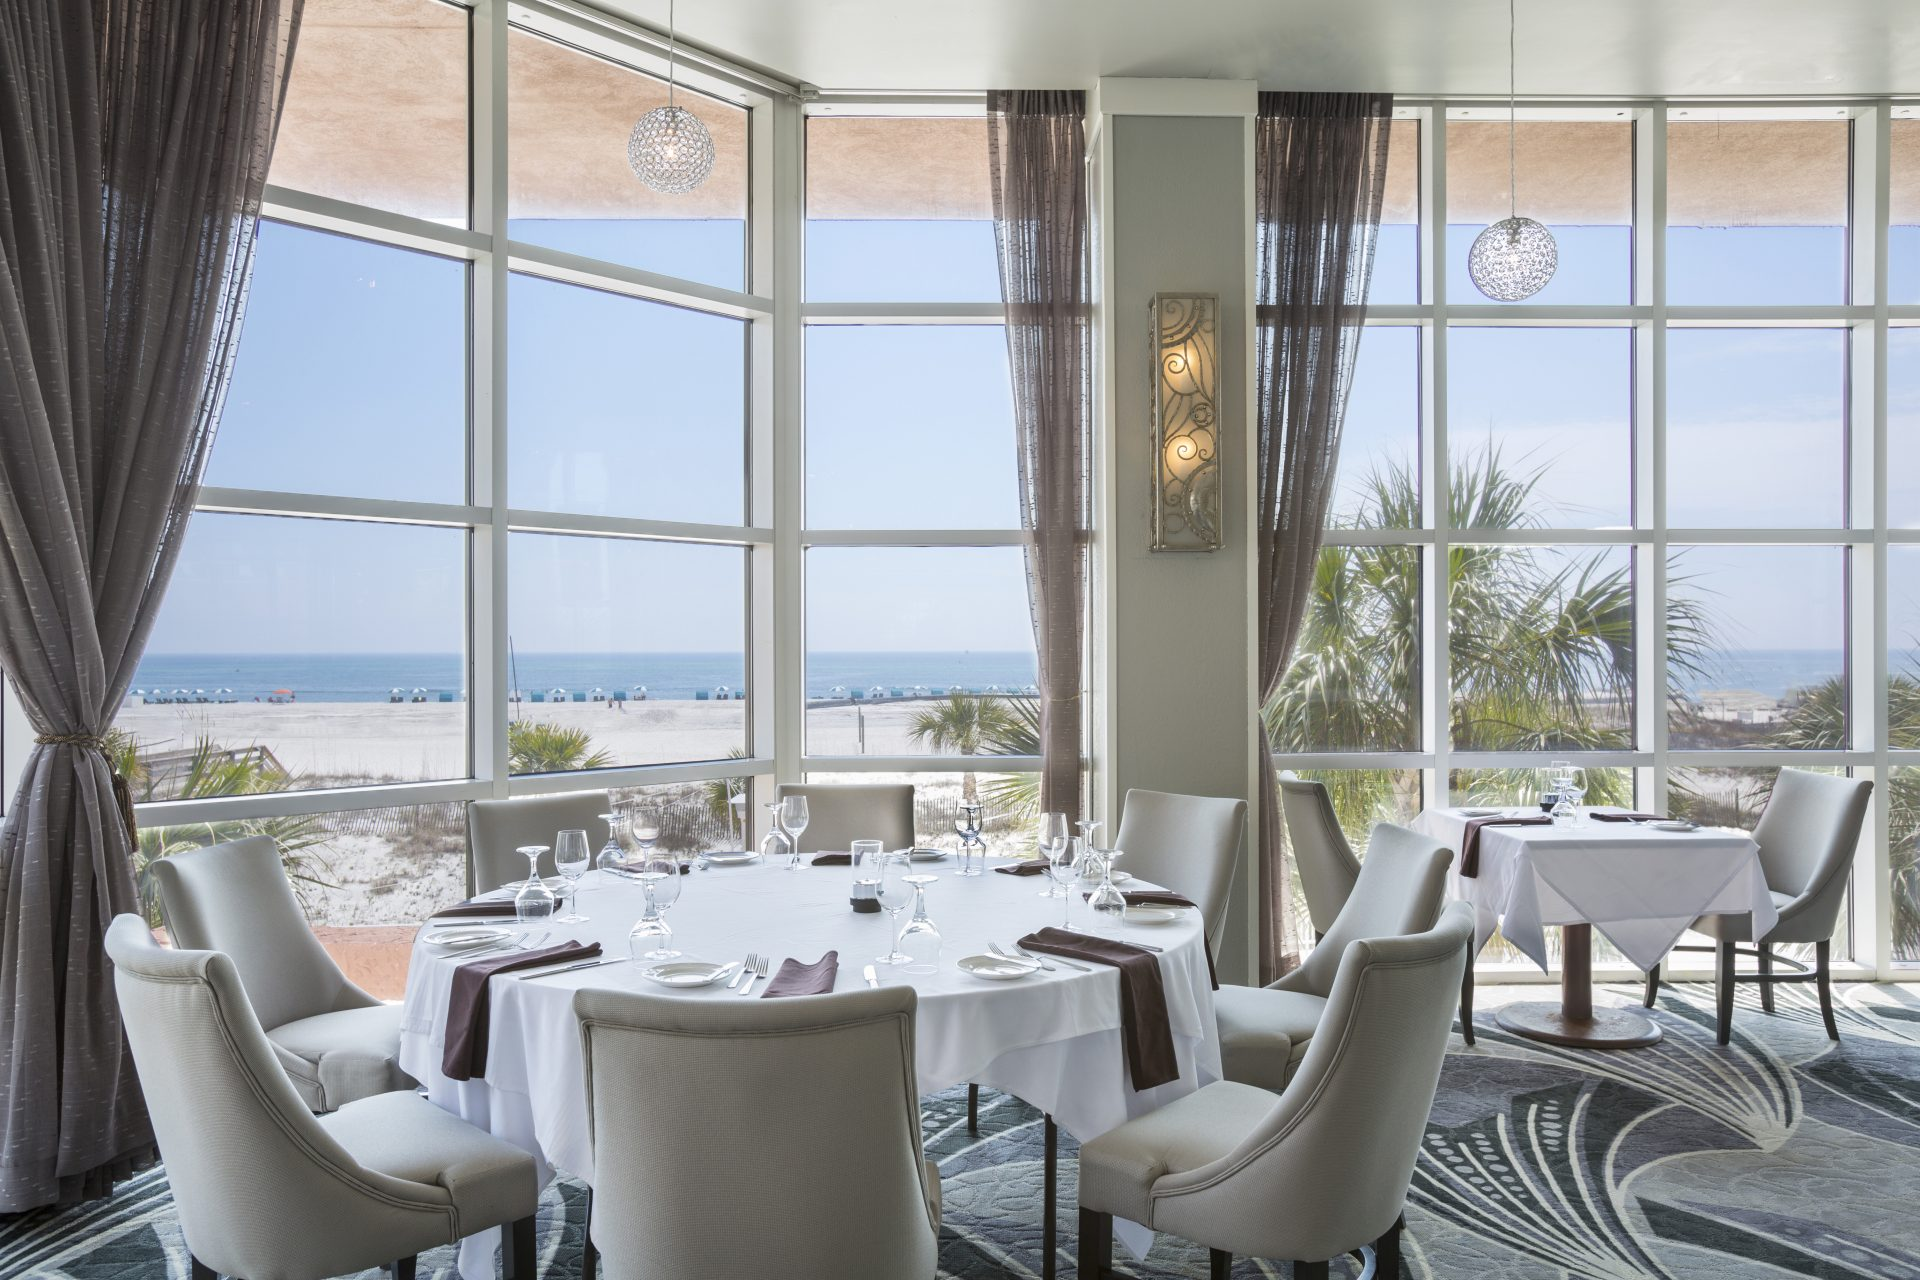 Voyagers Dining Room with Coastal Views